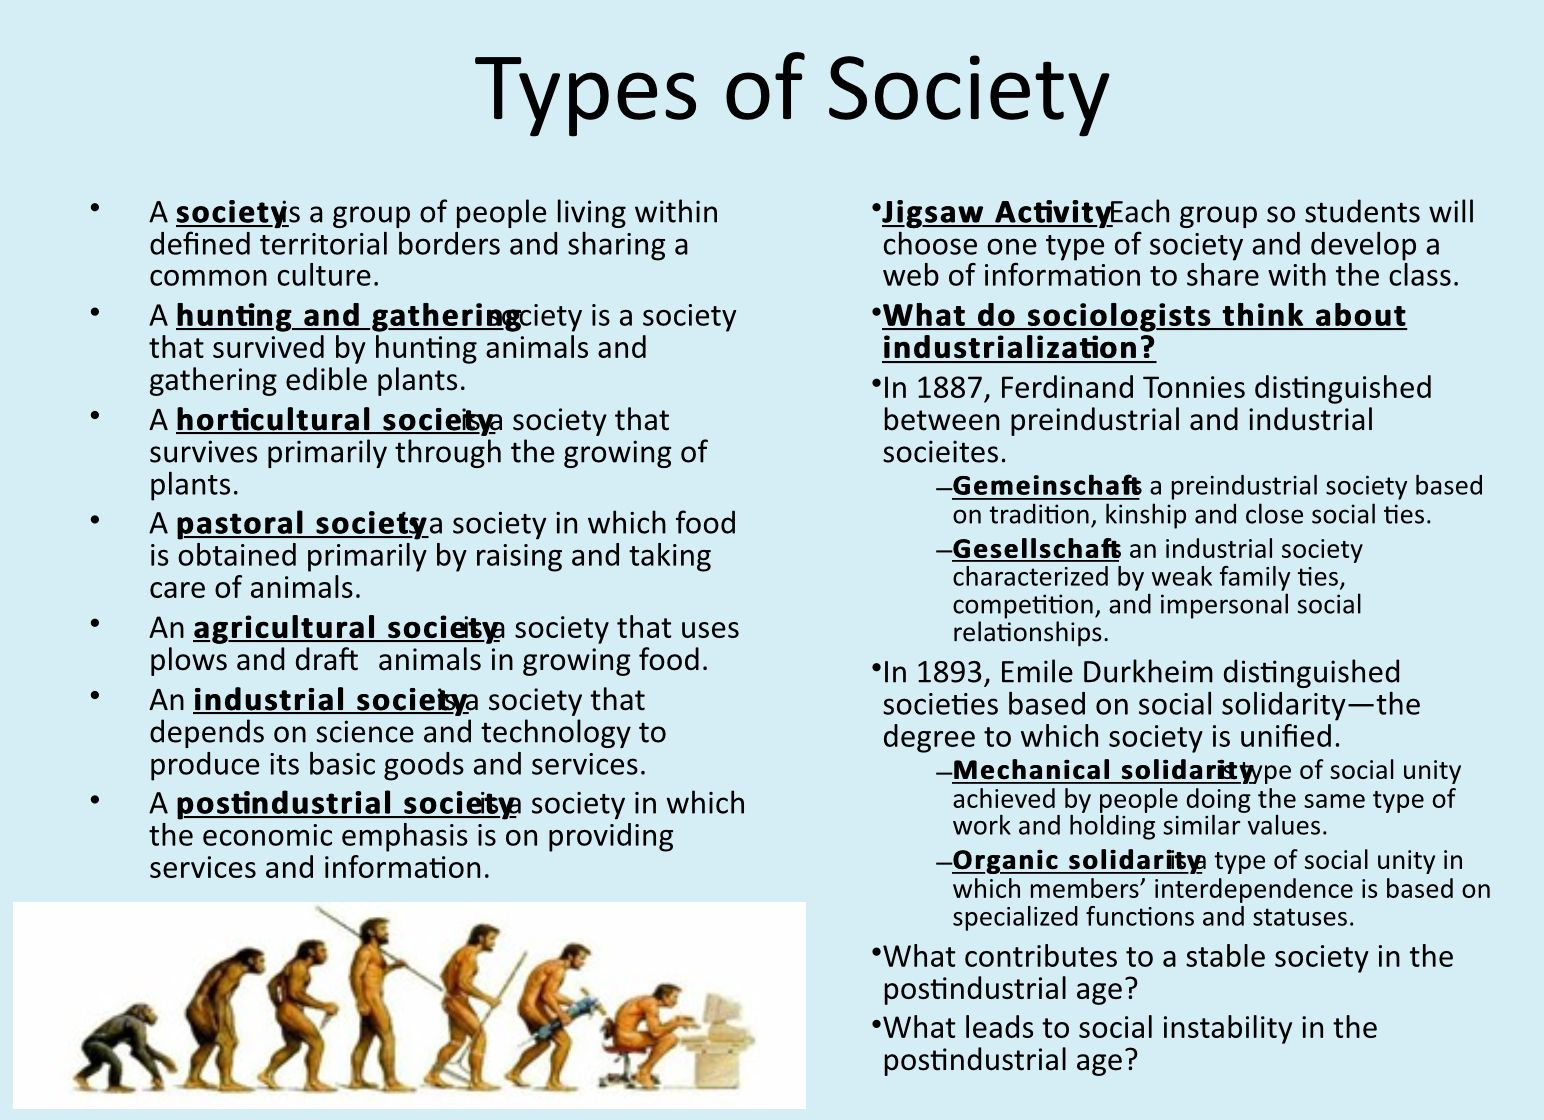 What are the types of society